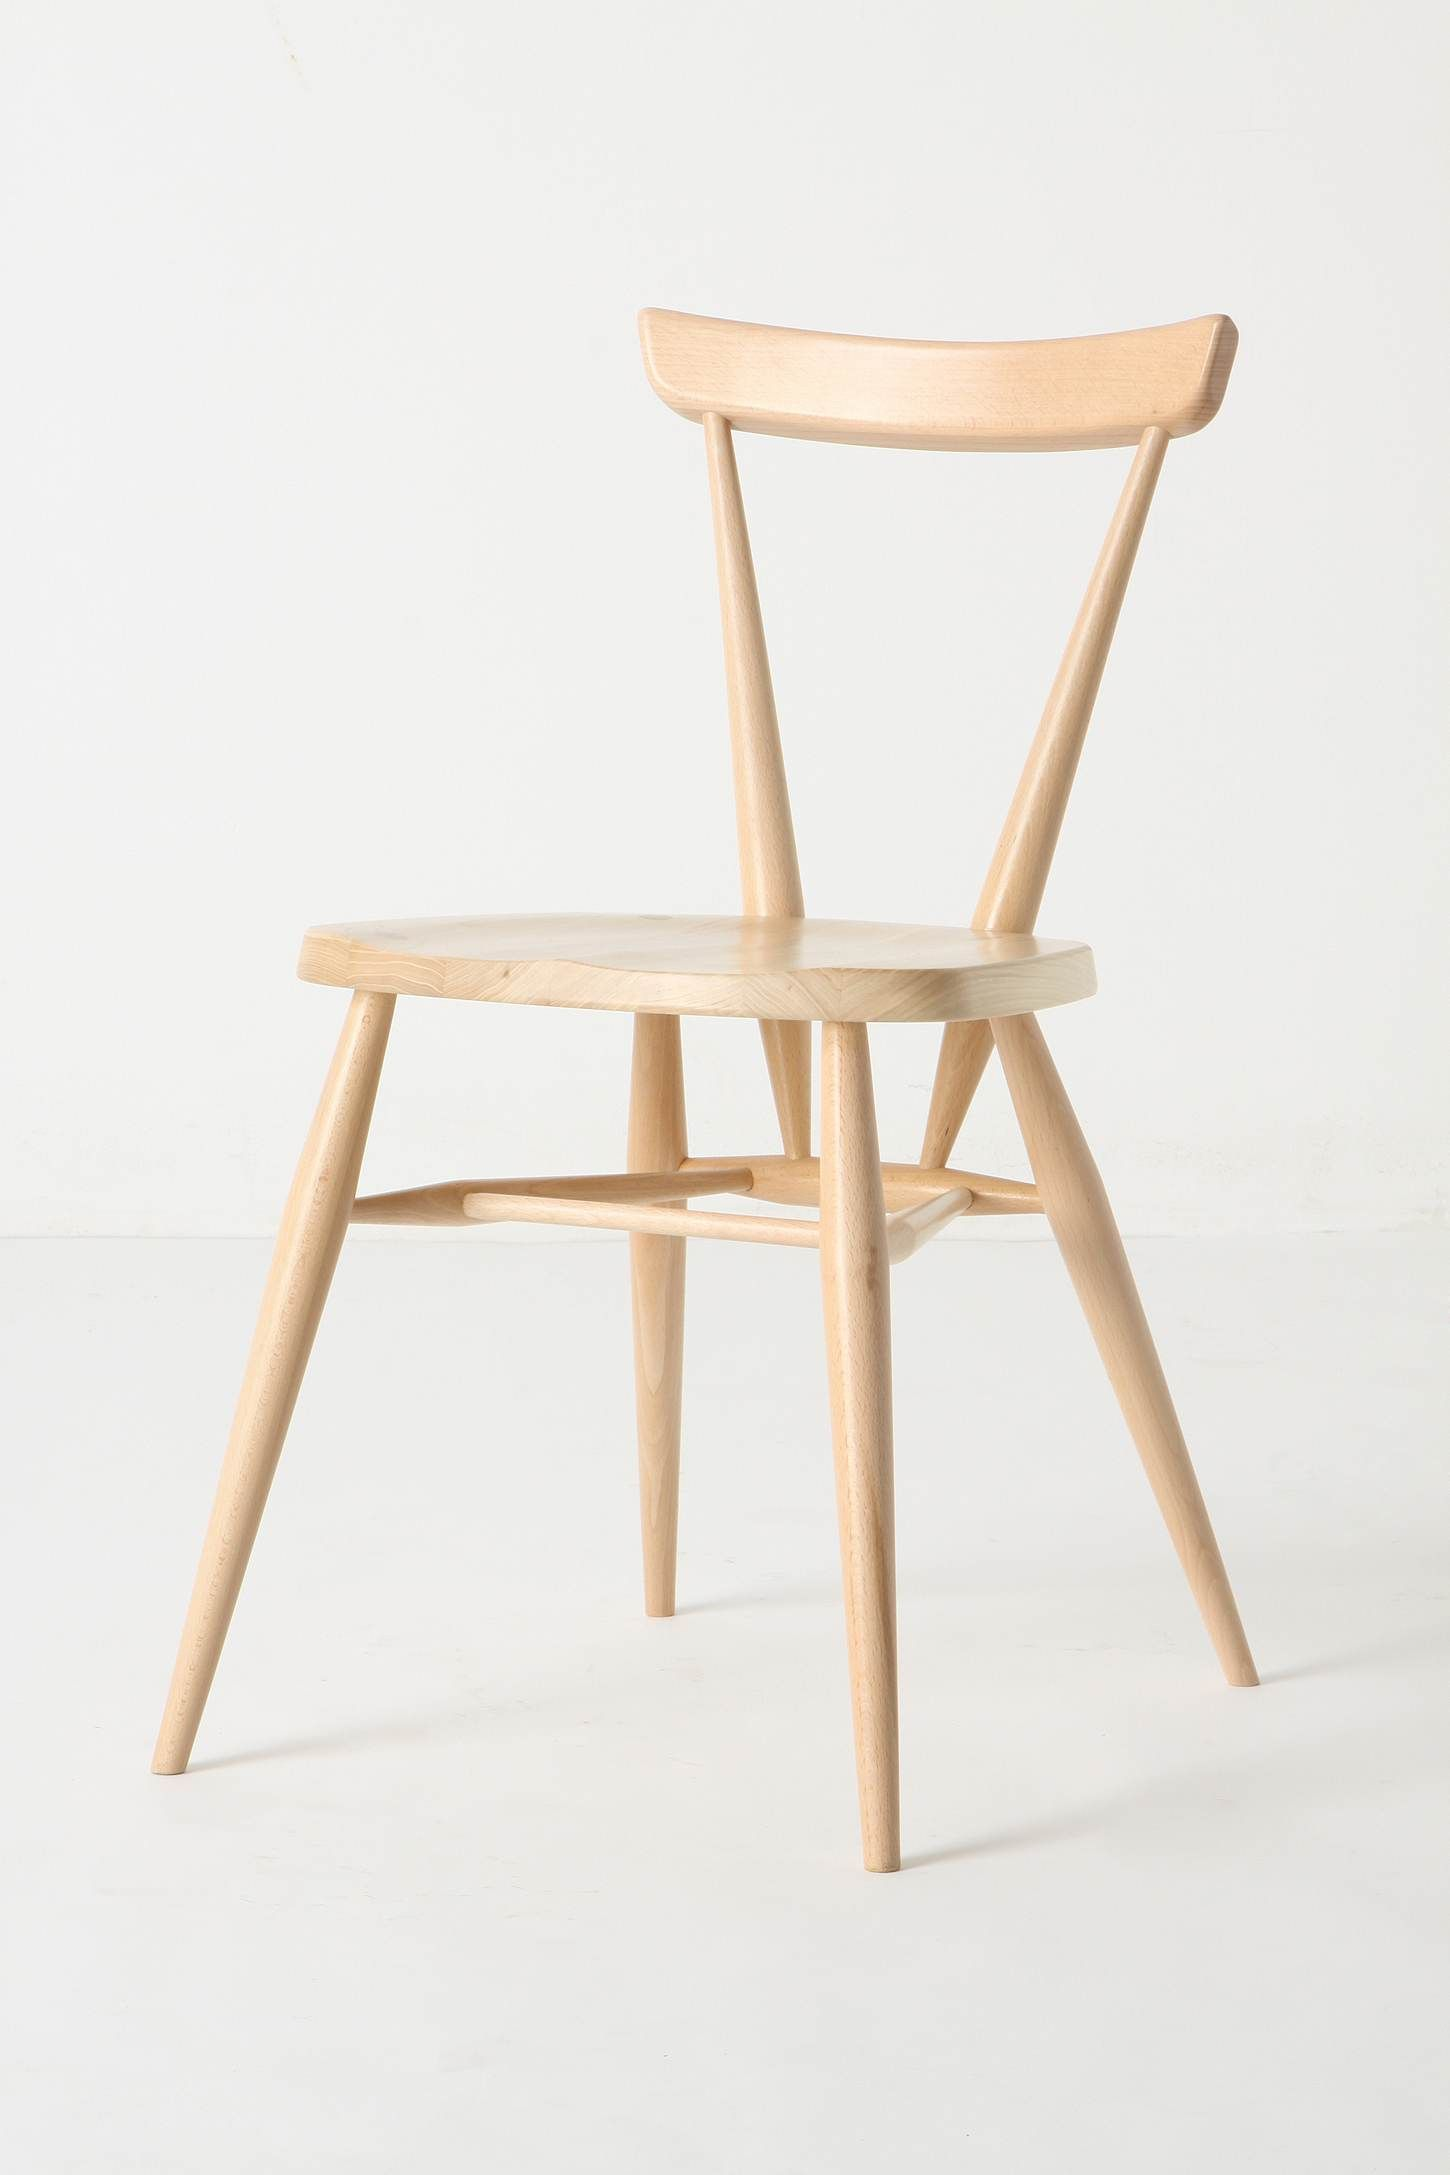 Dining chair from Anthropologie - designed by Ercol, 1950s